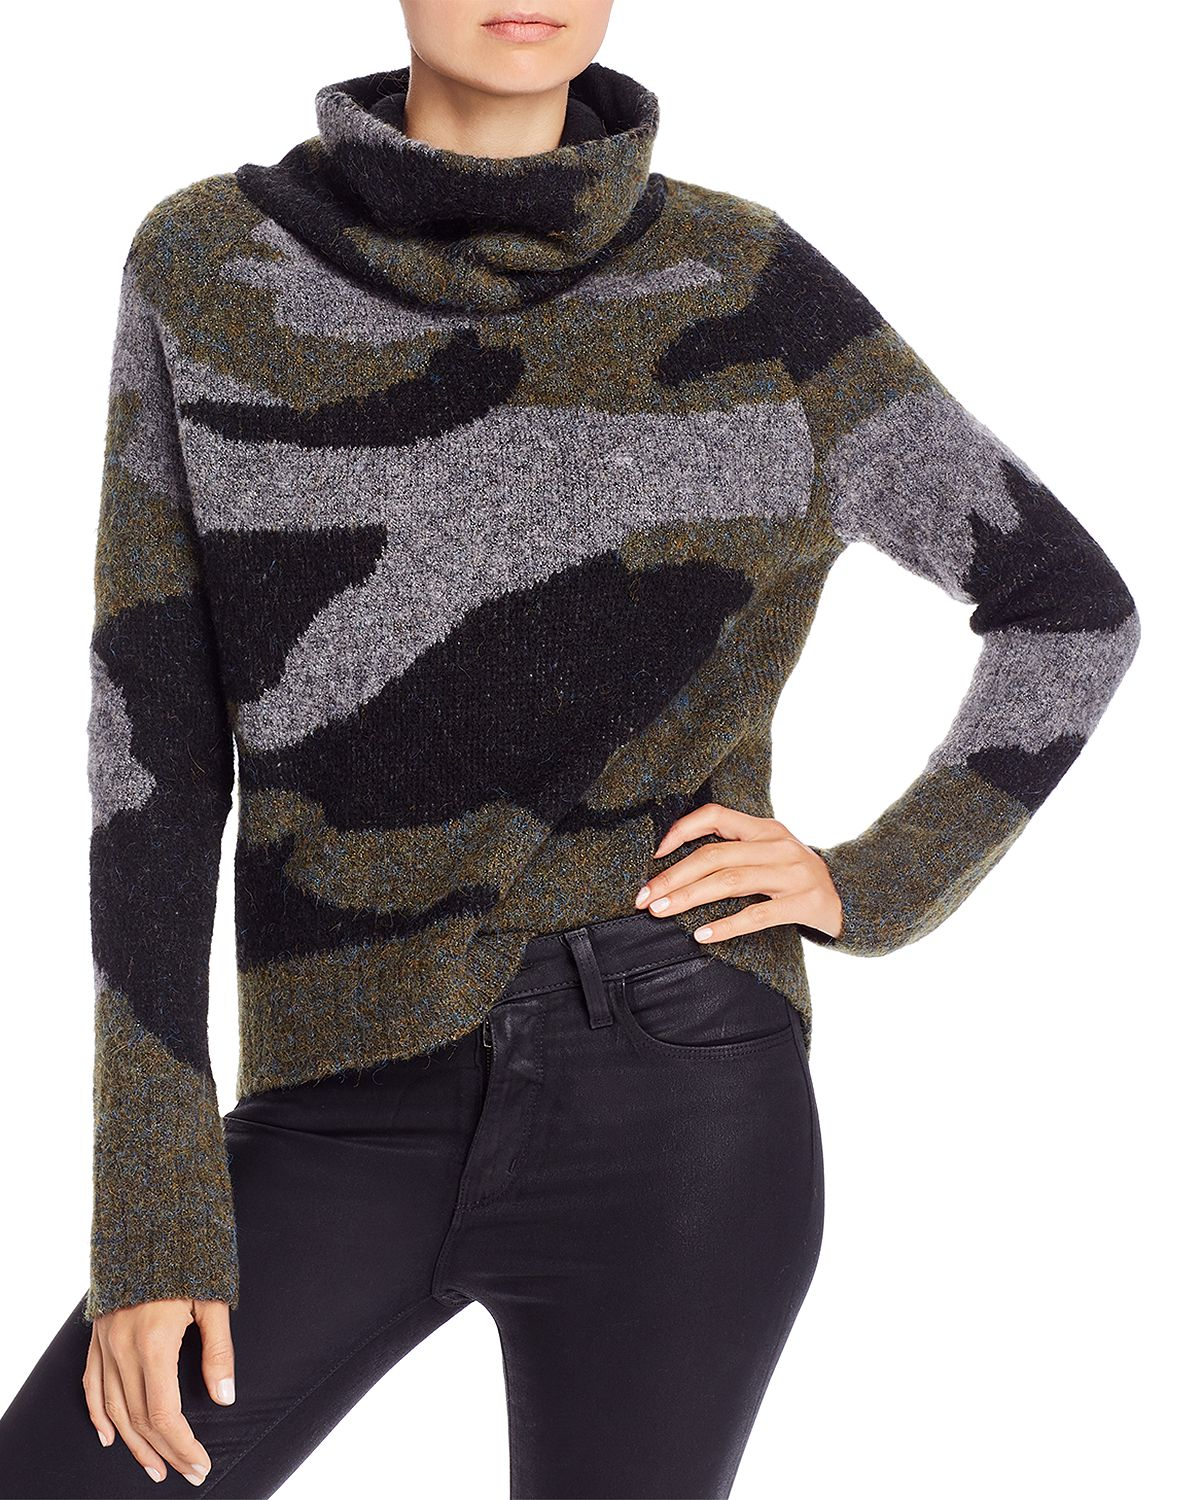 HighLow Camouflage Turtleneck Sweater in Camo